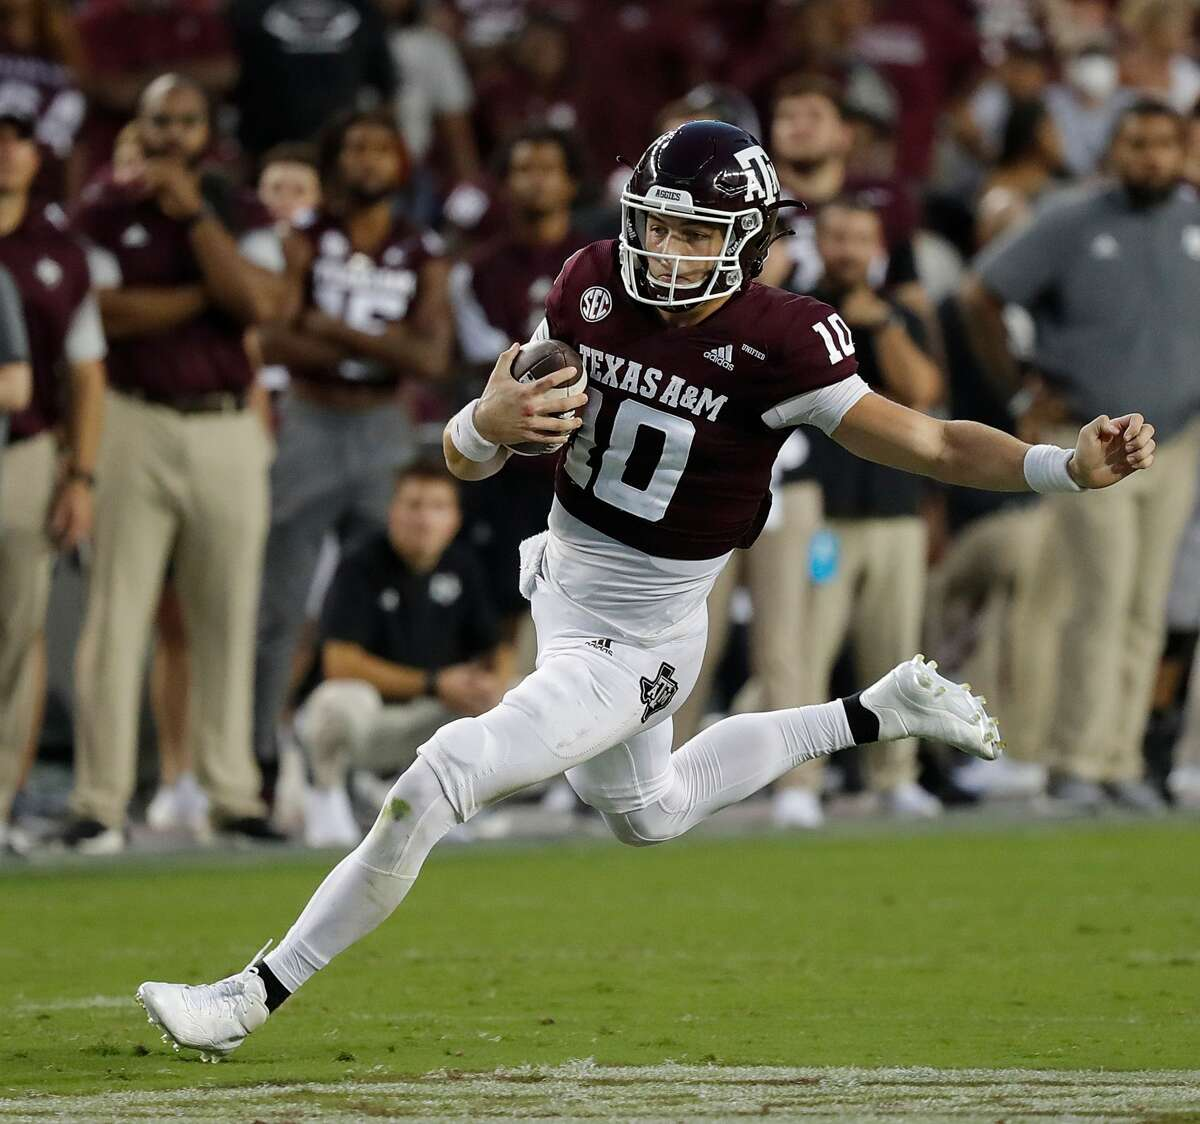 COLLEGE STATION, TEXAS - OCTOBER 02: Zach Calzada #10 of the Texas A&M Aggies scrambles out of the pocket in the second quarter against the Mississippi State Bulldogs at Kyle Field on October 02, 2021 in College Station, Texas. (Photo by Bob Levey/Getty Images)